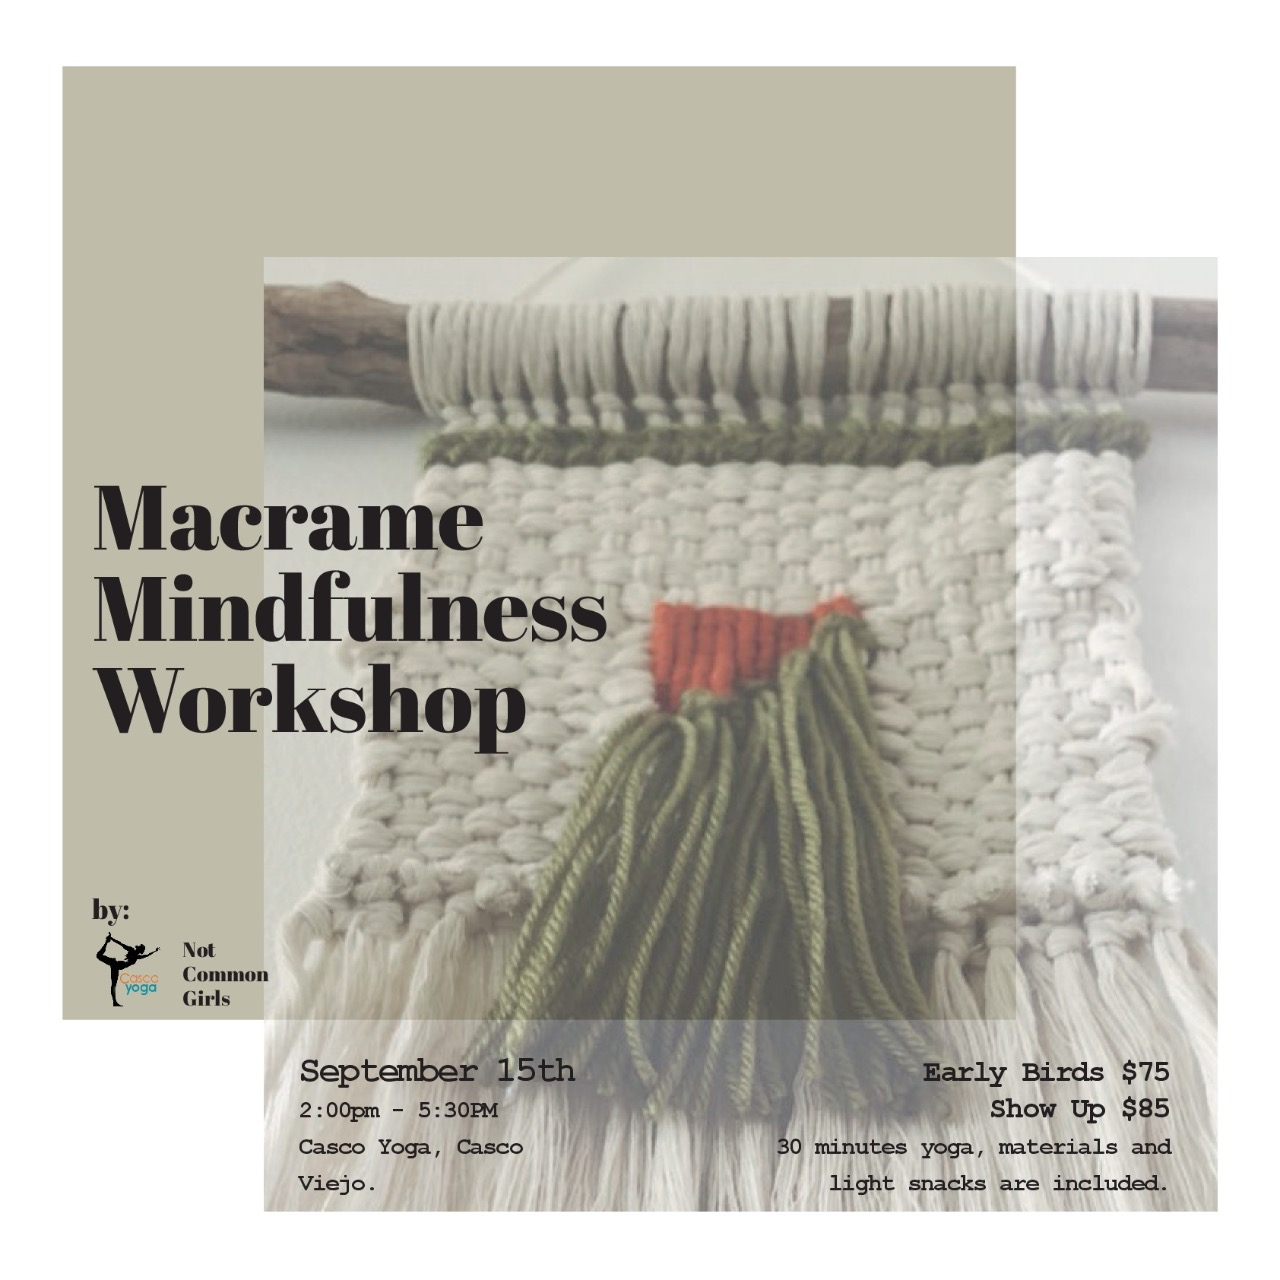 Macrame Mindfulness Workshop, Not Common Girls, Casco Yoga Panama, Yoga Studio. Casco Viejo. Panama City, Panama. Yoga Panama. Ashtanga yoga panama. Vinyasa yoga panama. clases de yoga en panama. Casco Antiguo Panama. boutique yoga studio